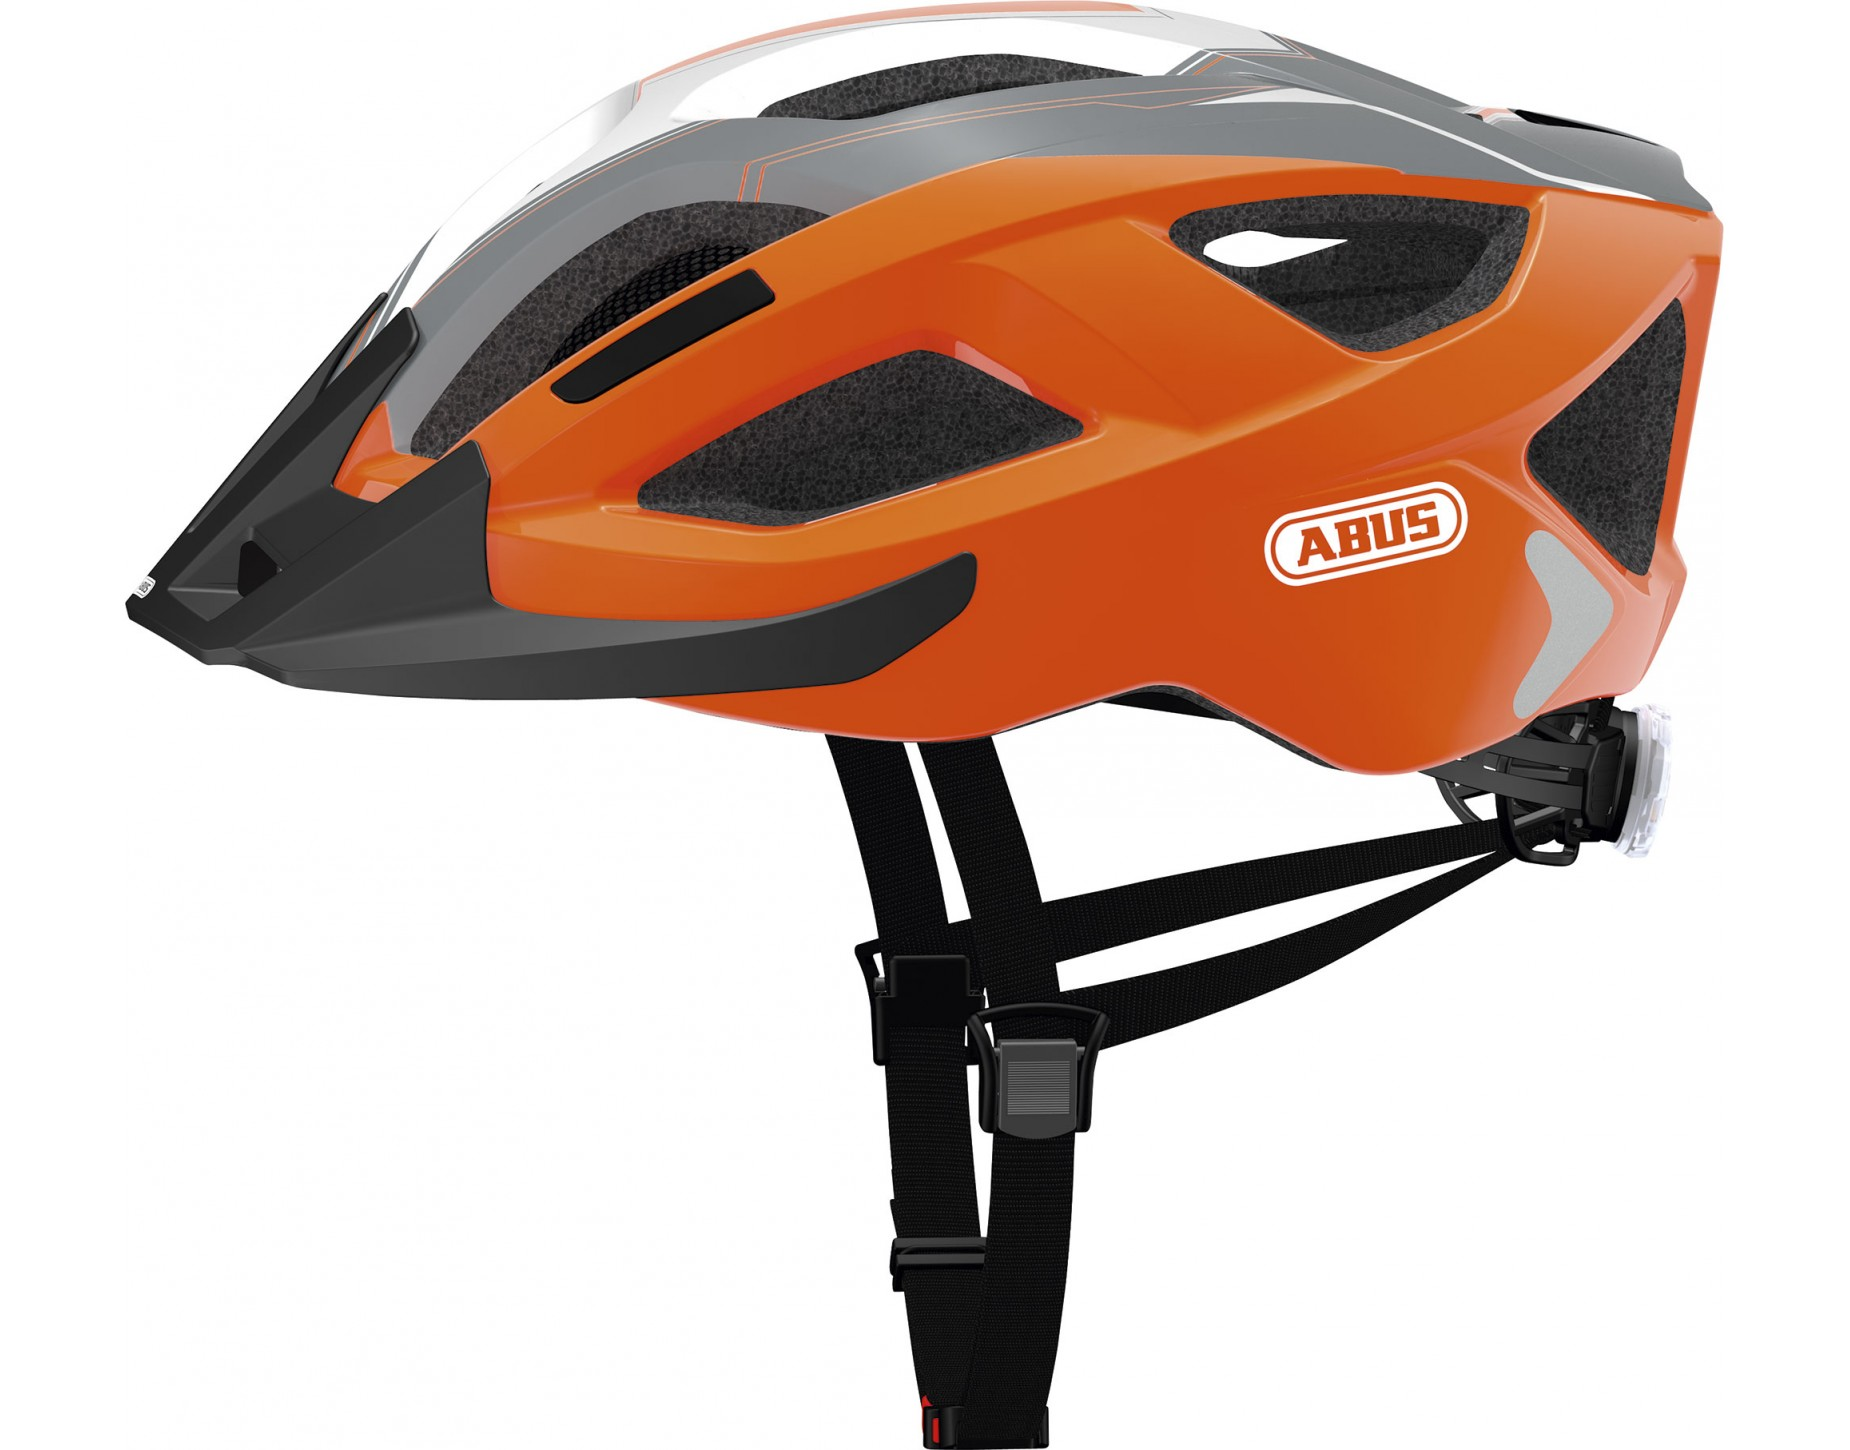 Aduro 2.0 race orange M